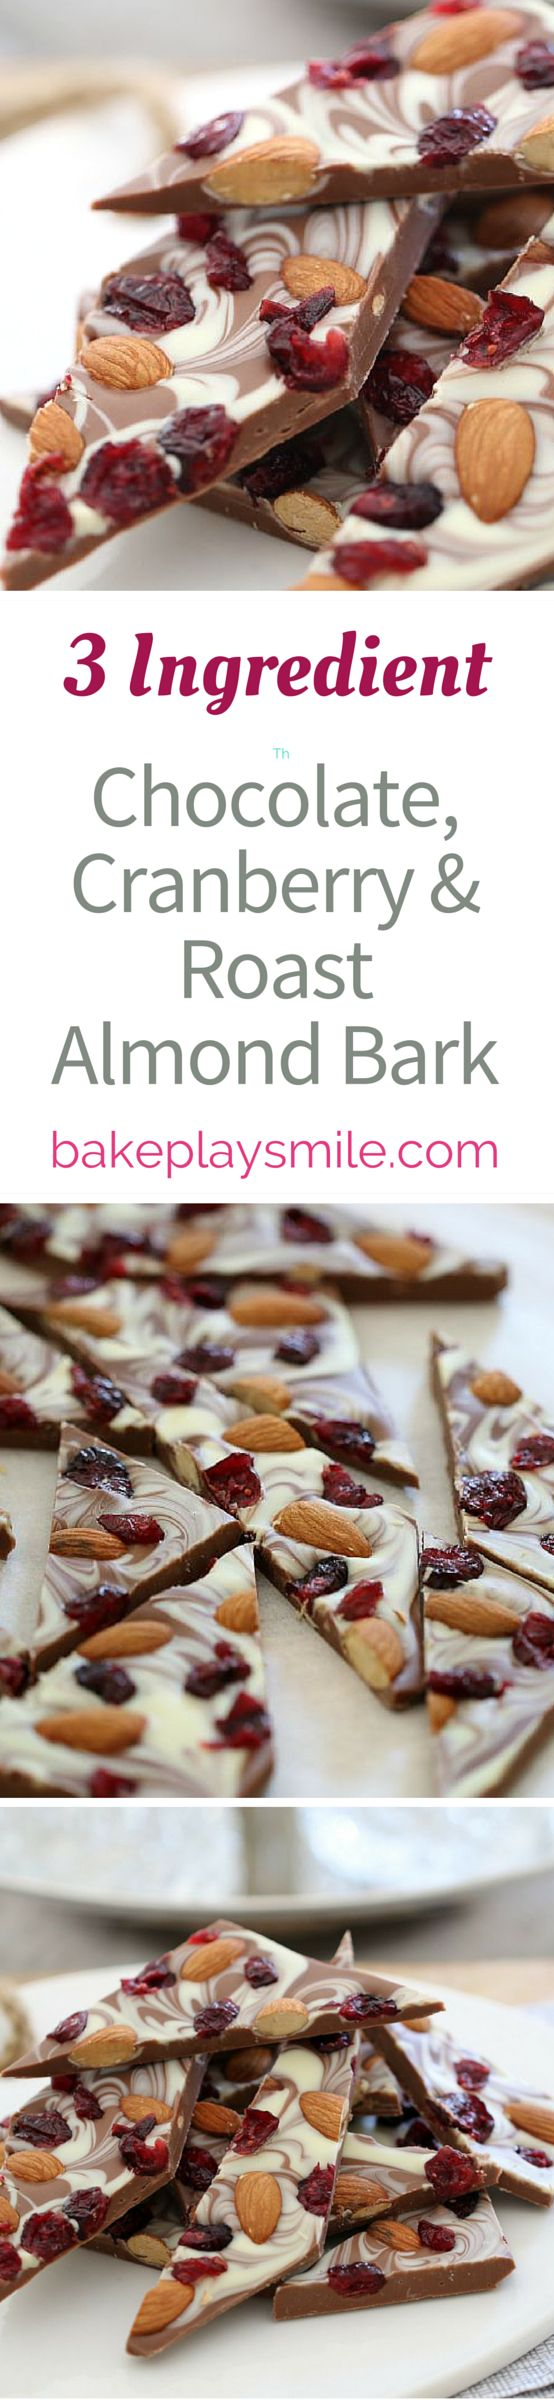 Chocolate, Cranberry & Roast Almond Bark - Conventional Method